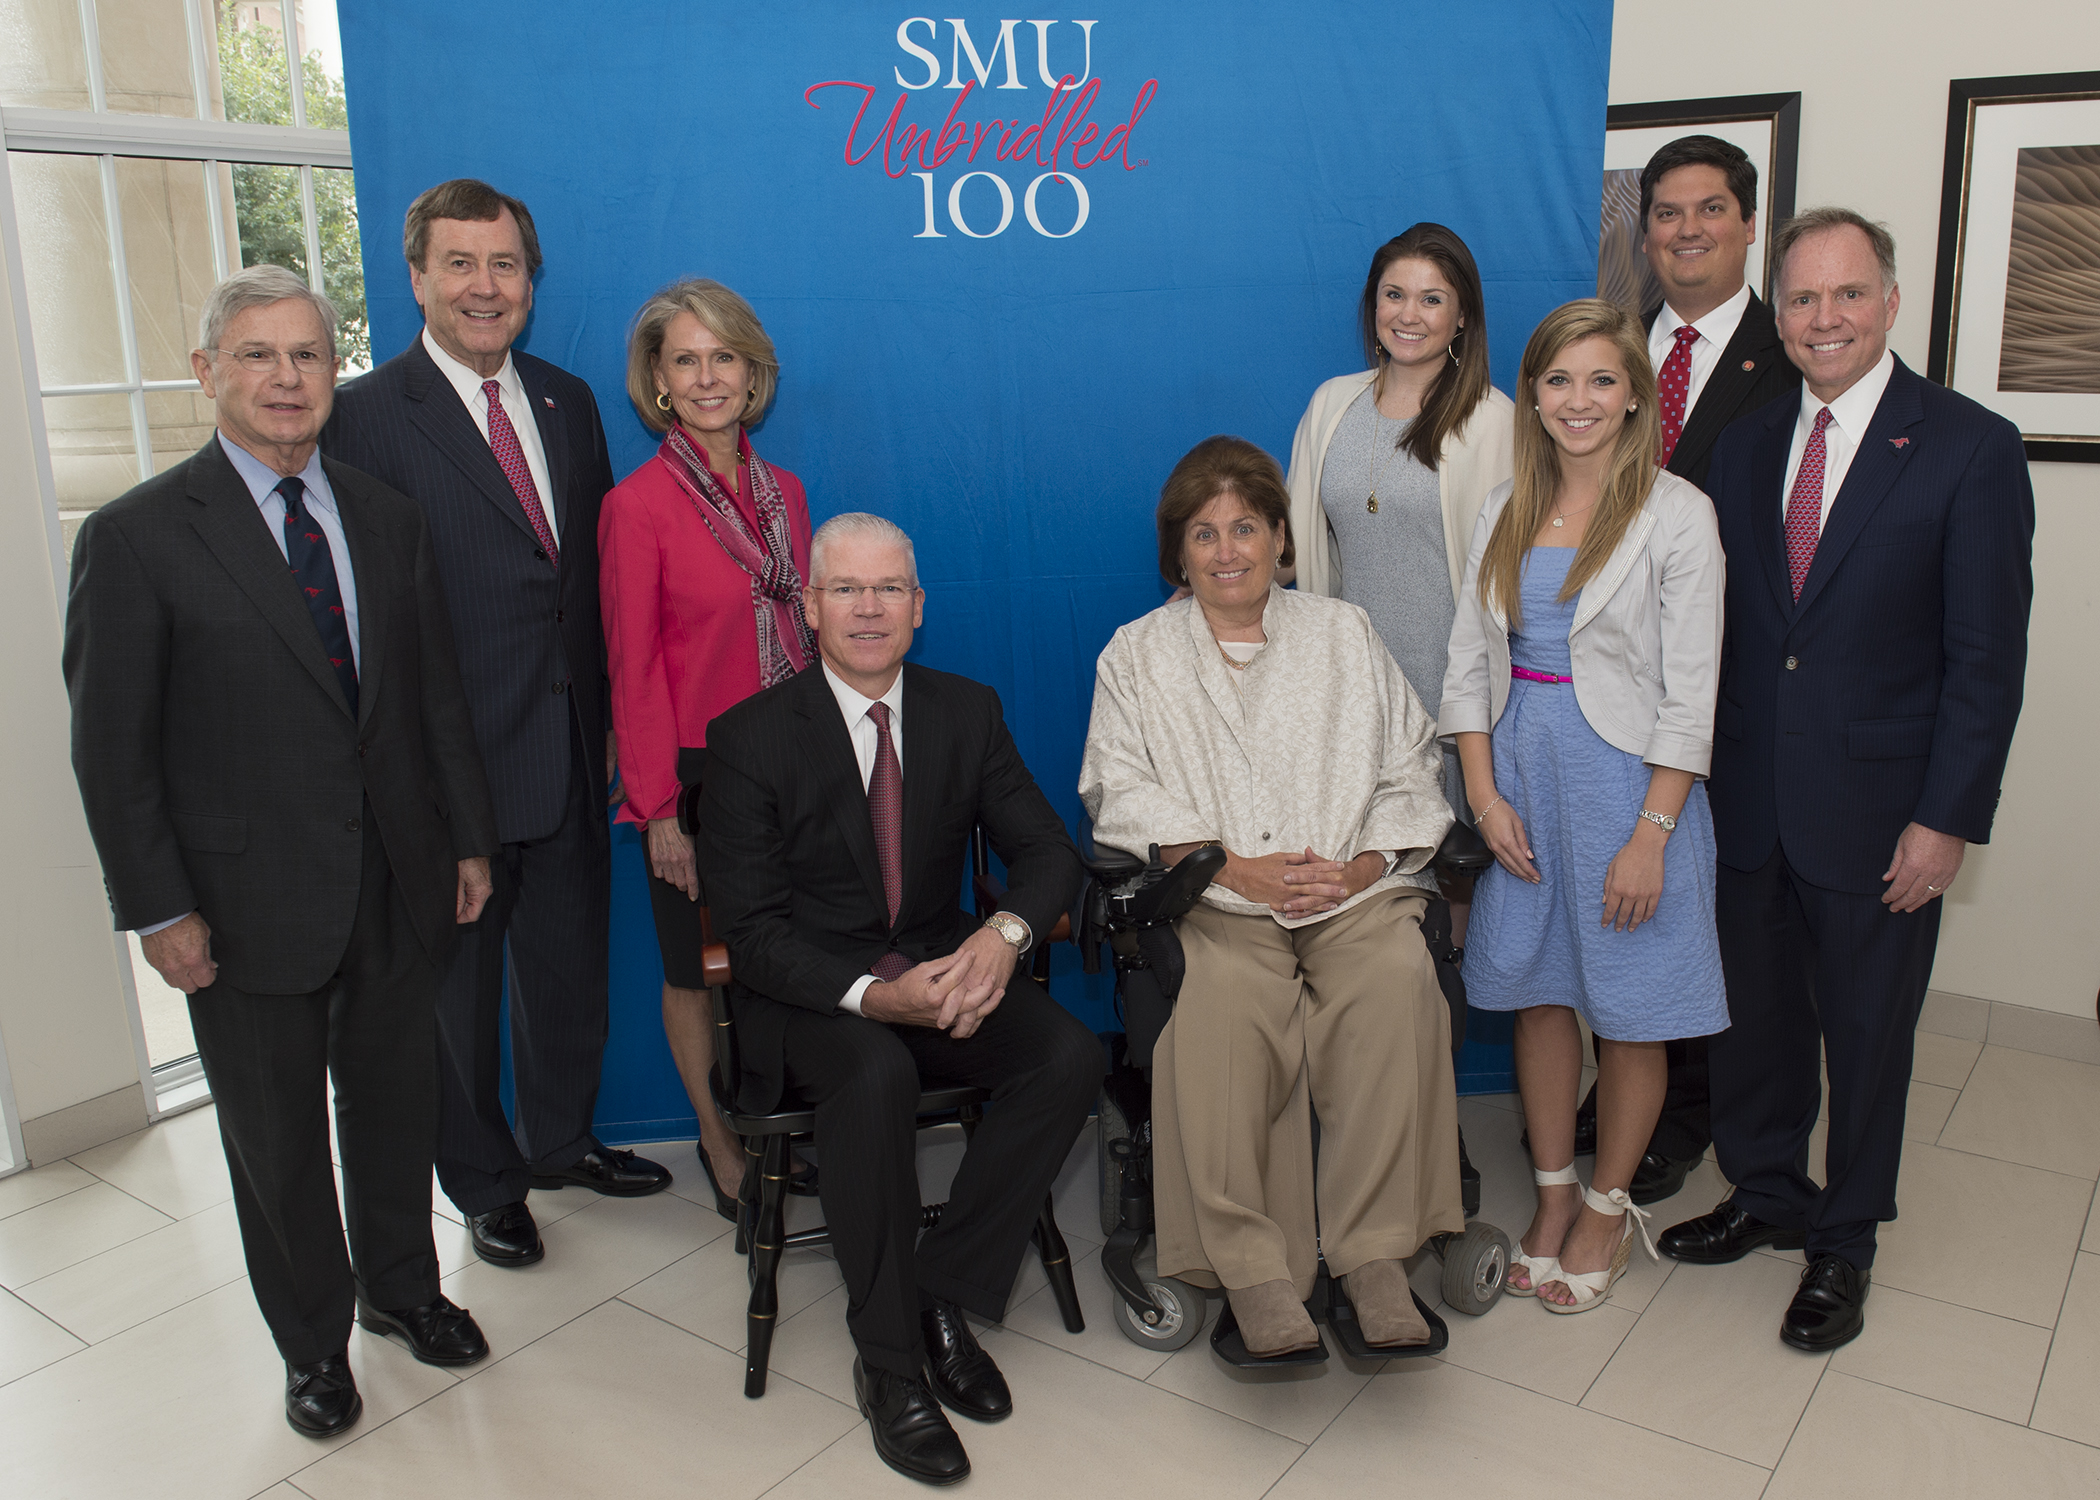 SMU Board of Trustees Chair Michael M. Boone, SMU President R. Gerald Turner, Mrs. Gail Turner, Richard Templeton, Mary Templeton, daughter Stephanie Templeton, engineering student Elizabeth (Liz) Dubret, Lyle Engineering School Dean Marc P. Christensen, and Brad E. Cheves, SMU Vice President for Development and External Affairs.